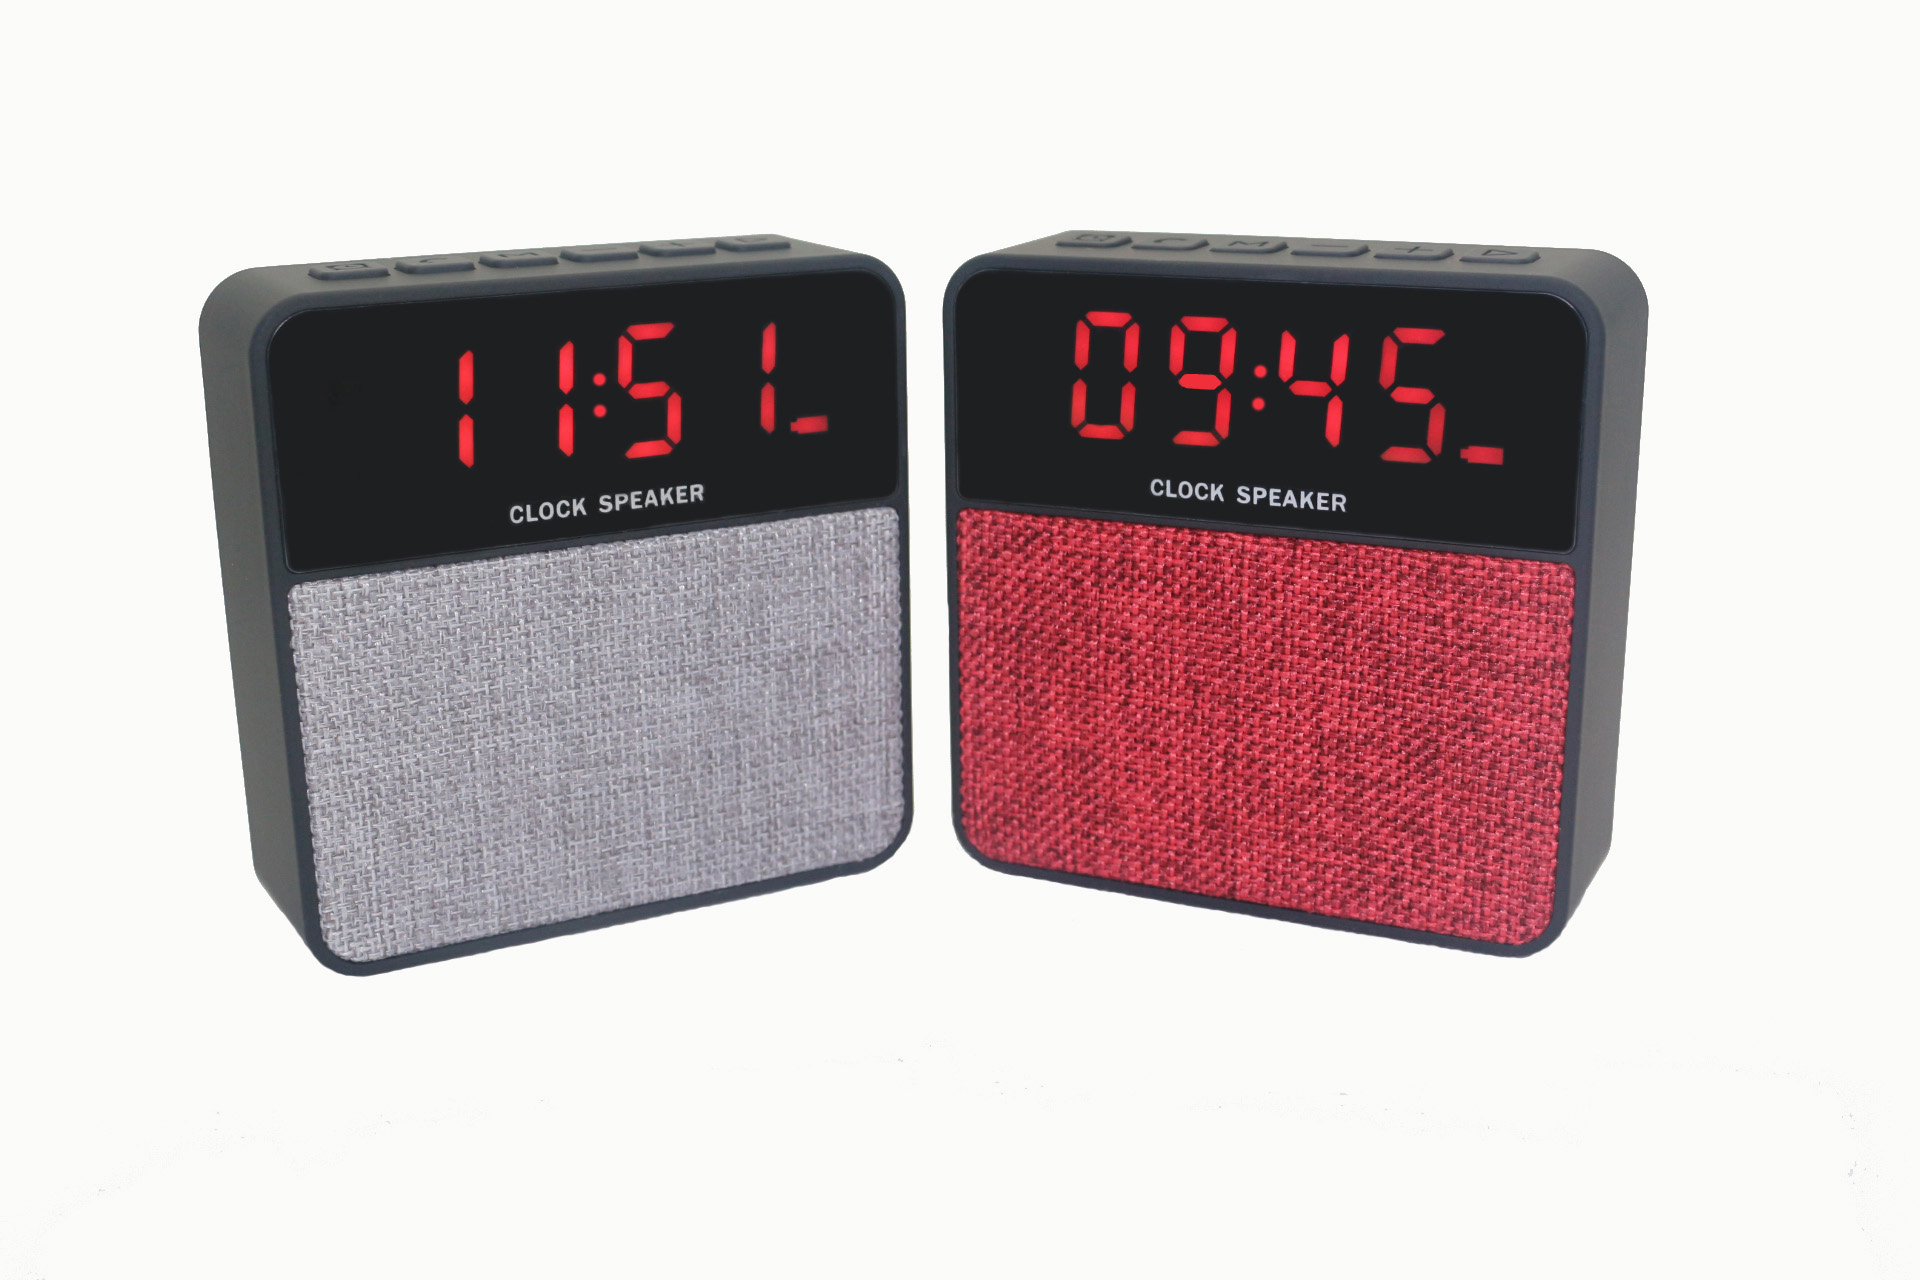 Firstsing Bluetooth 4.2 Speaker Micro TF USB FM Radio Portable Music Speakers With Clock Function